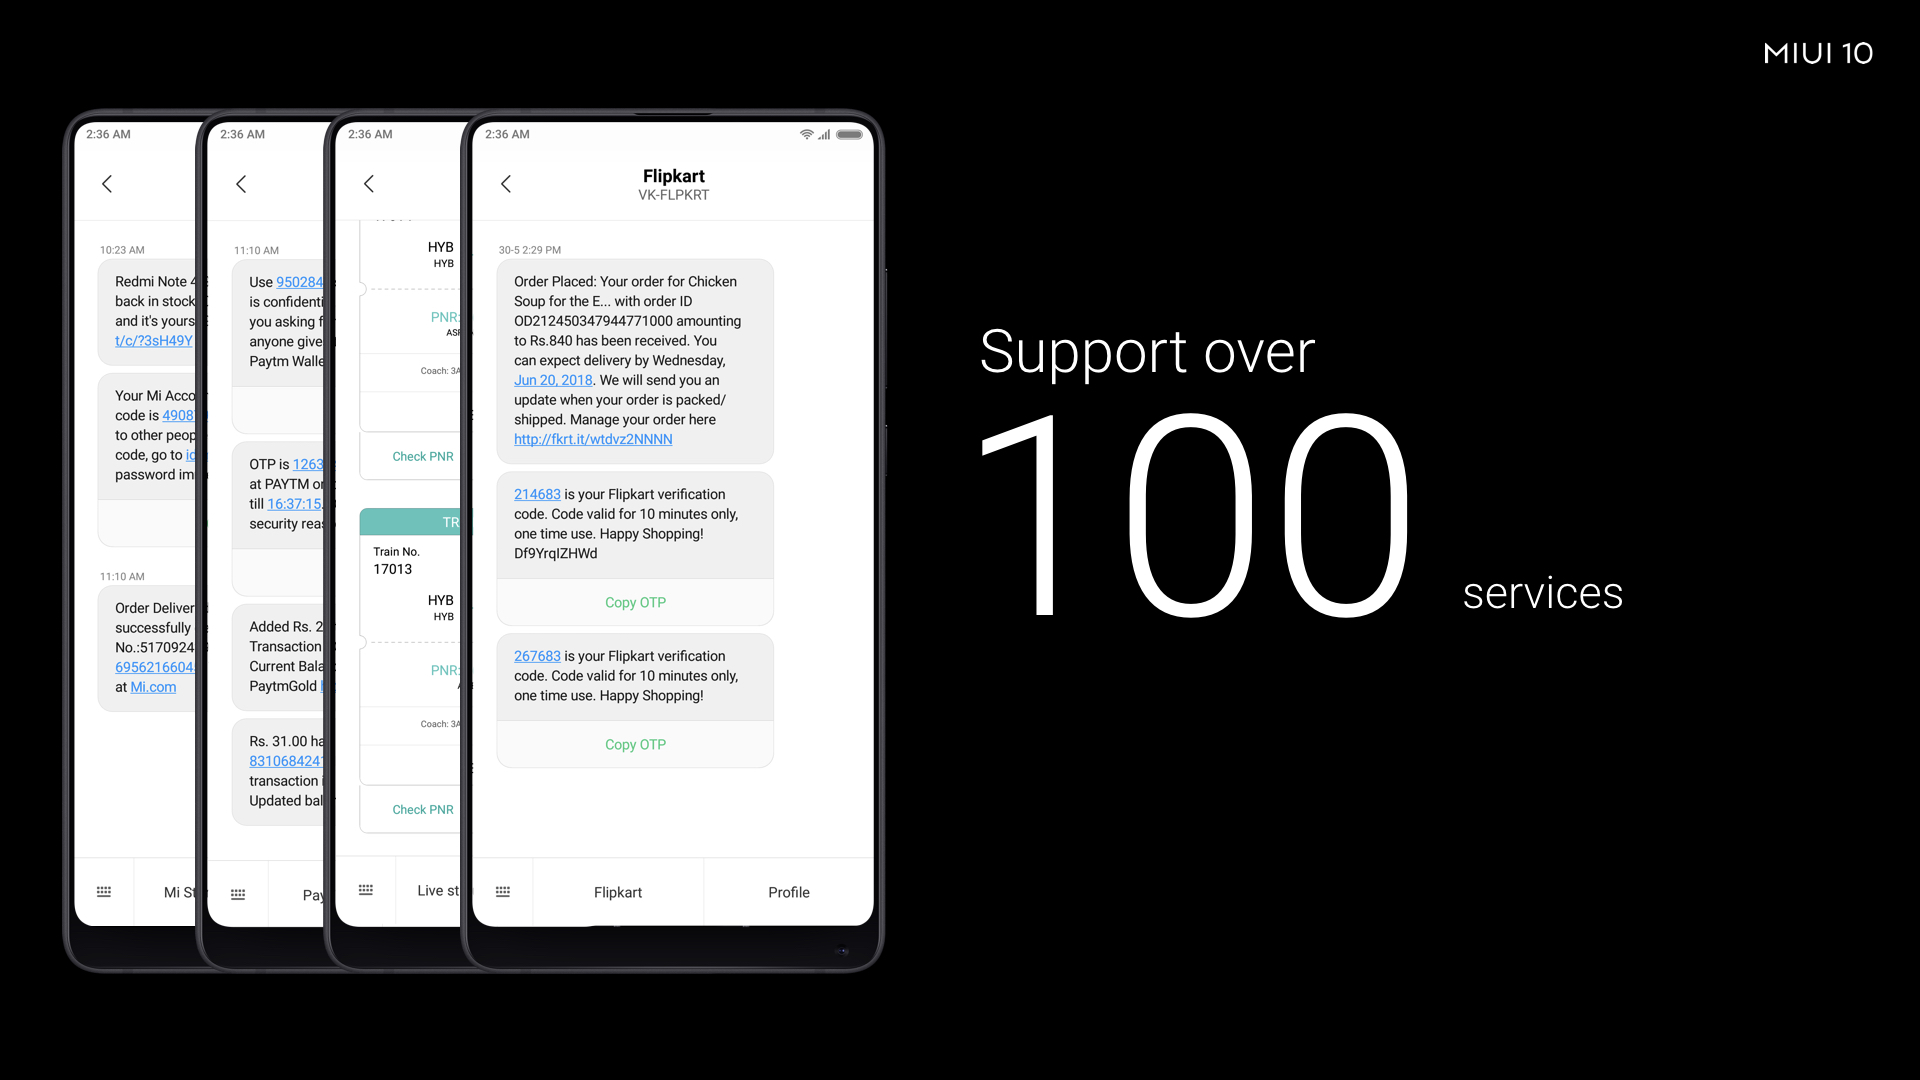 Redmi Y2 & MIUI 10 launched in India - Bulletin - Mi